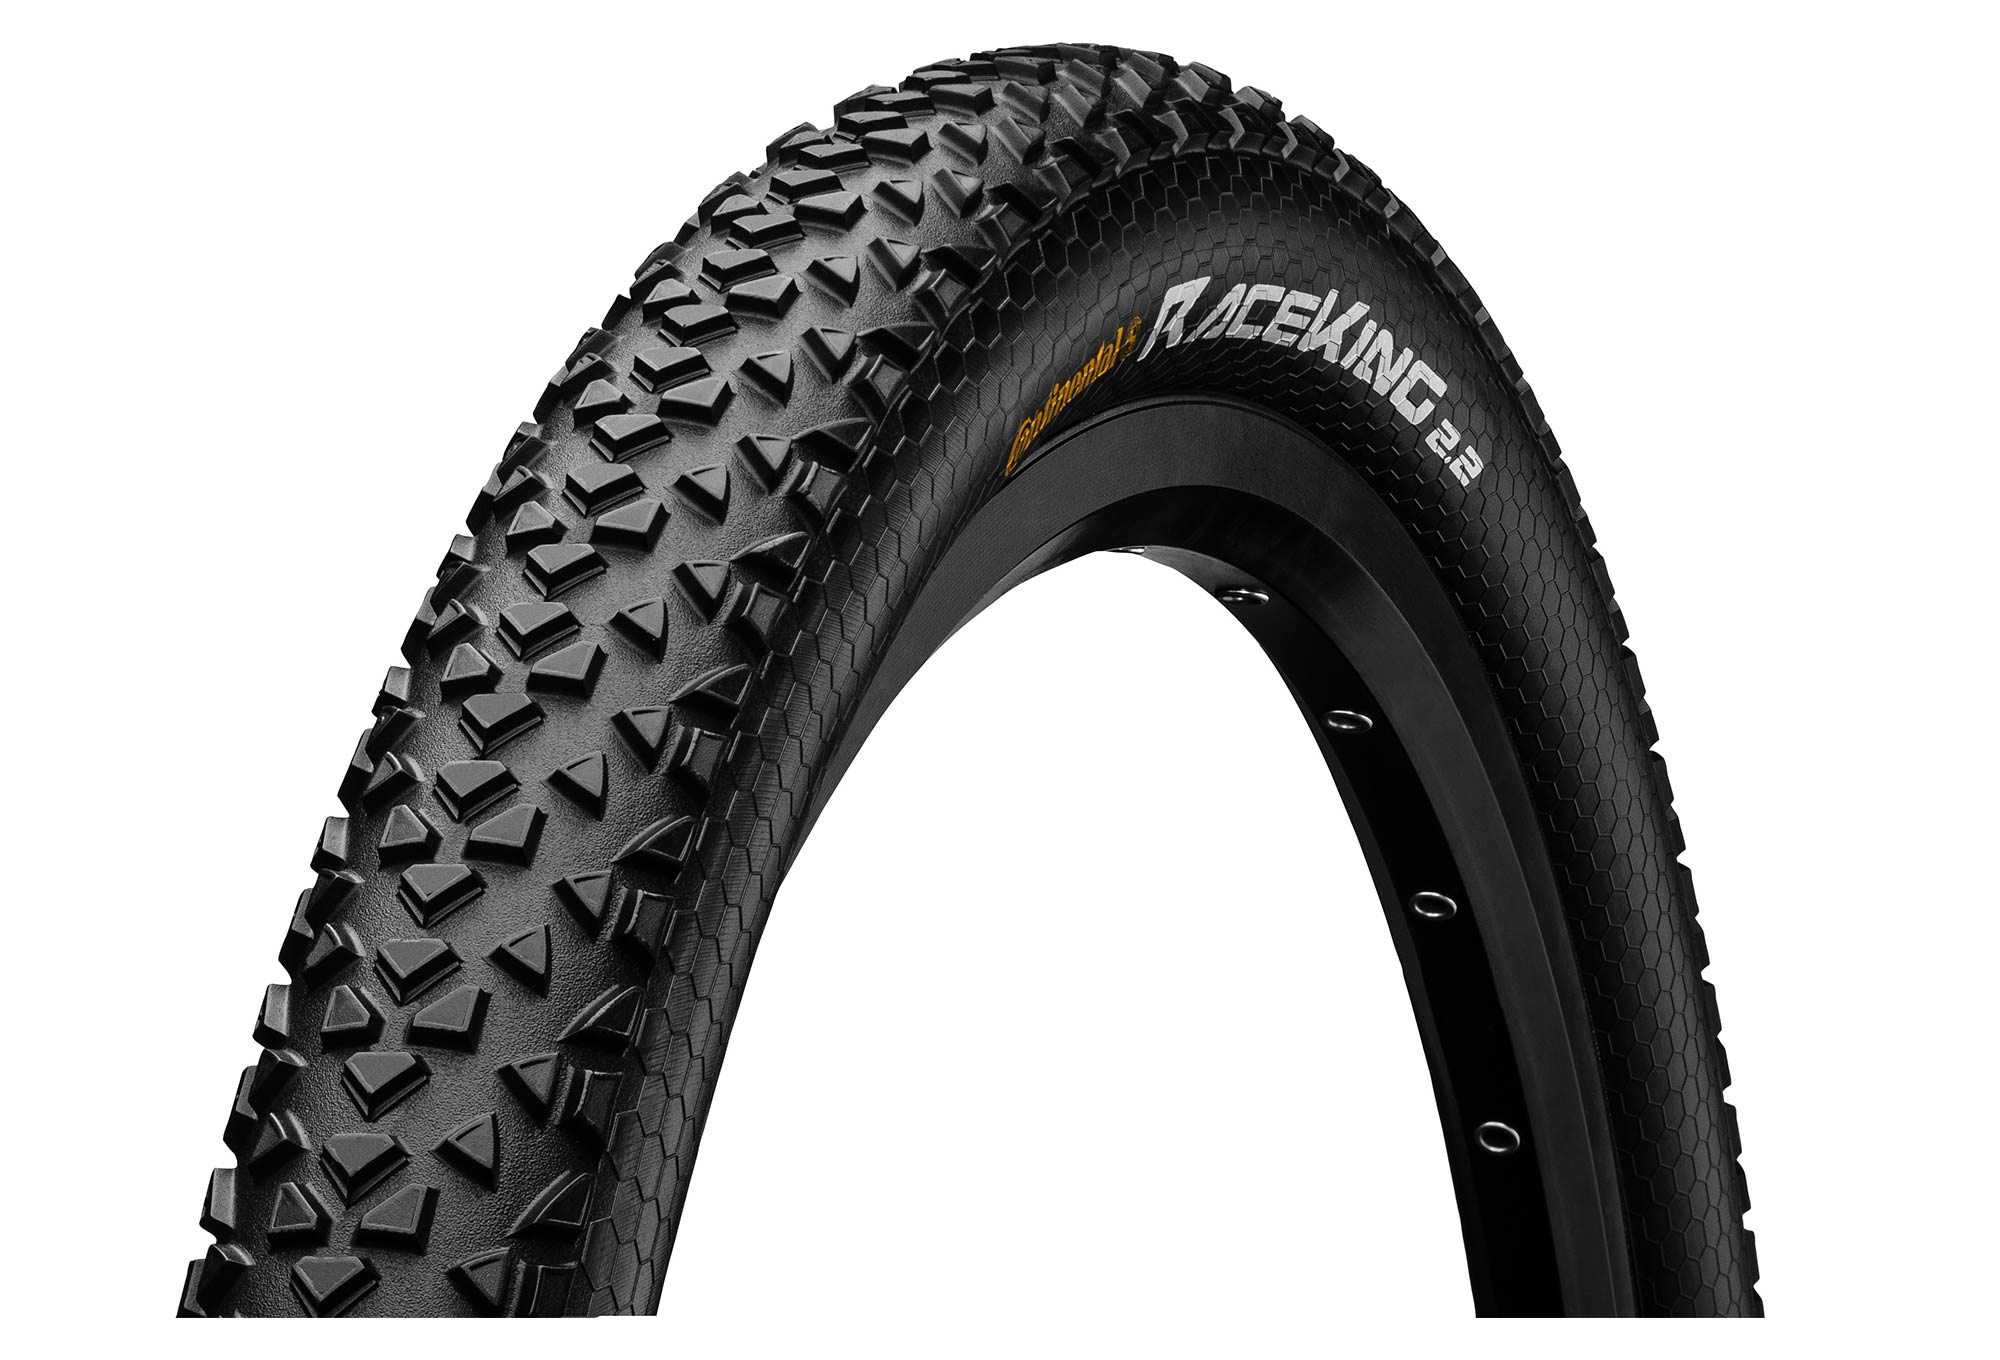 continental race king performance 27 5 mtb reifen tubeless. Black Bedroom Furniture Sets. Home Design Ideas